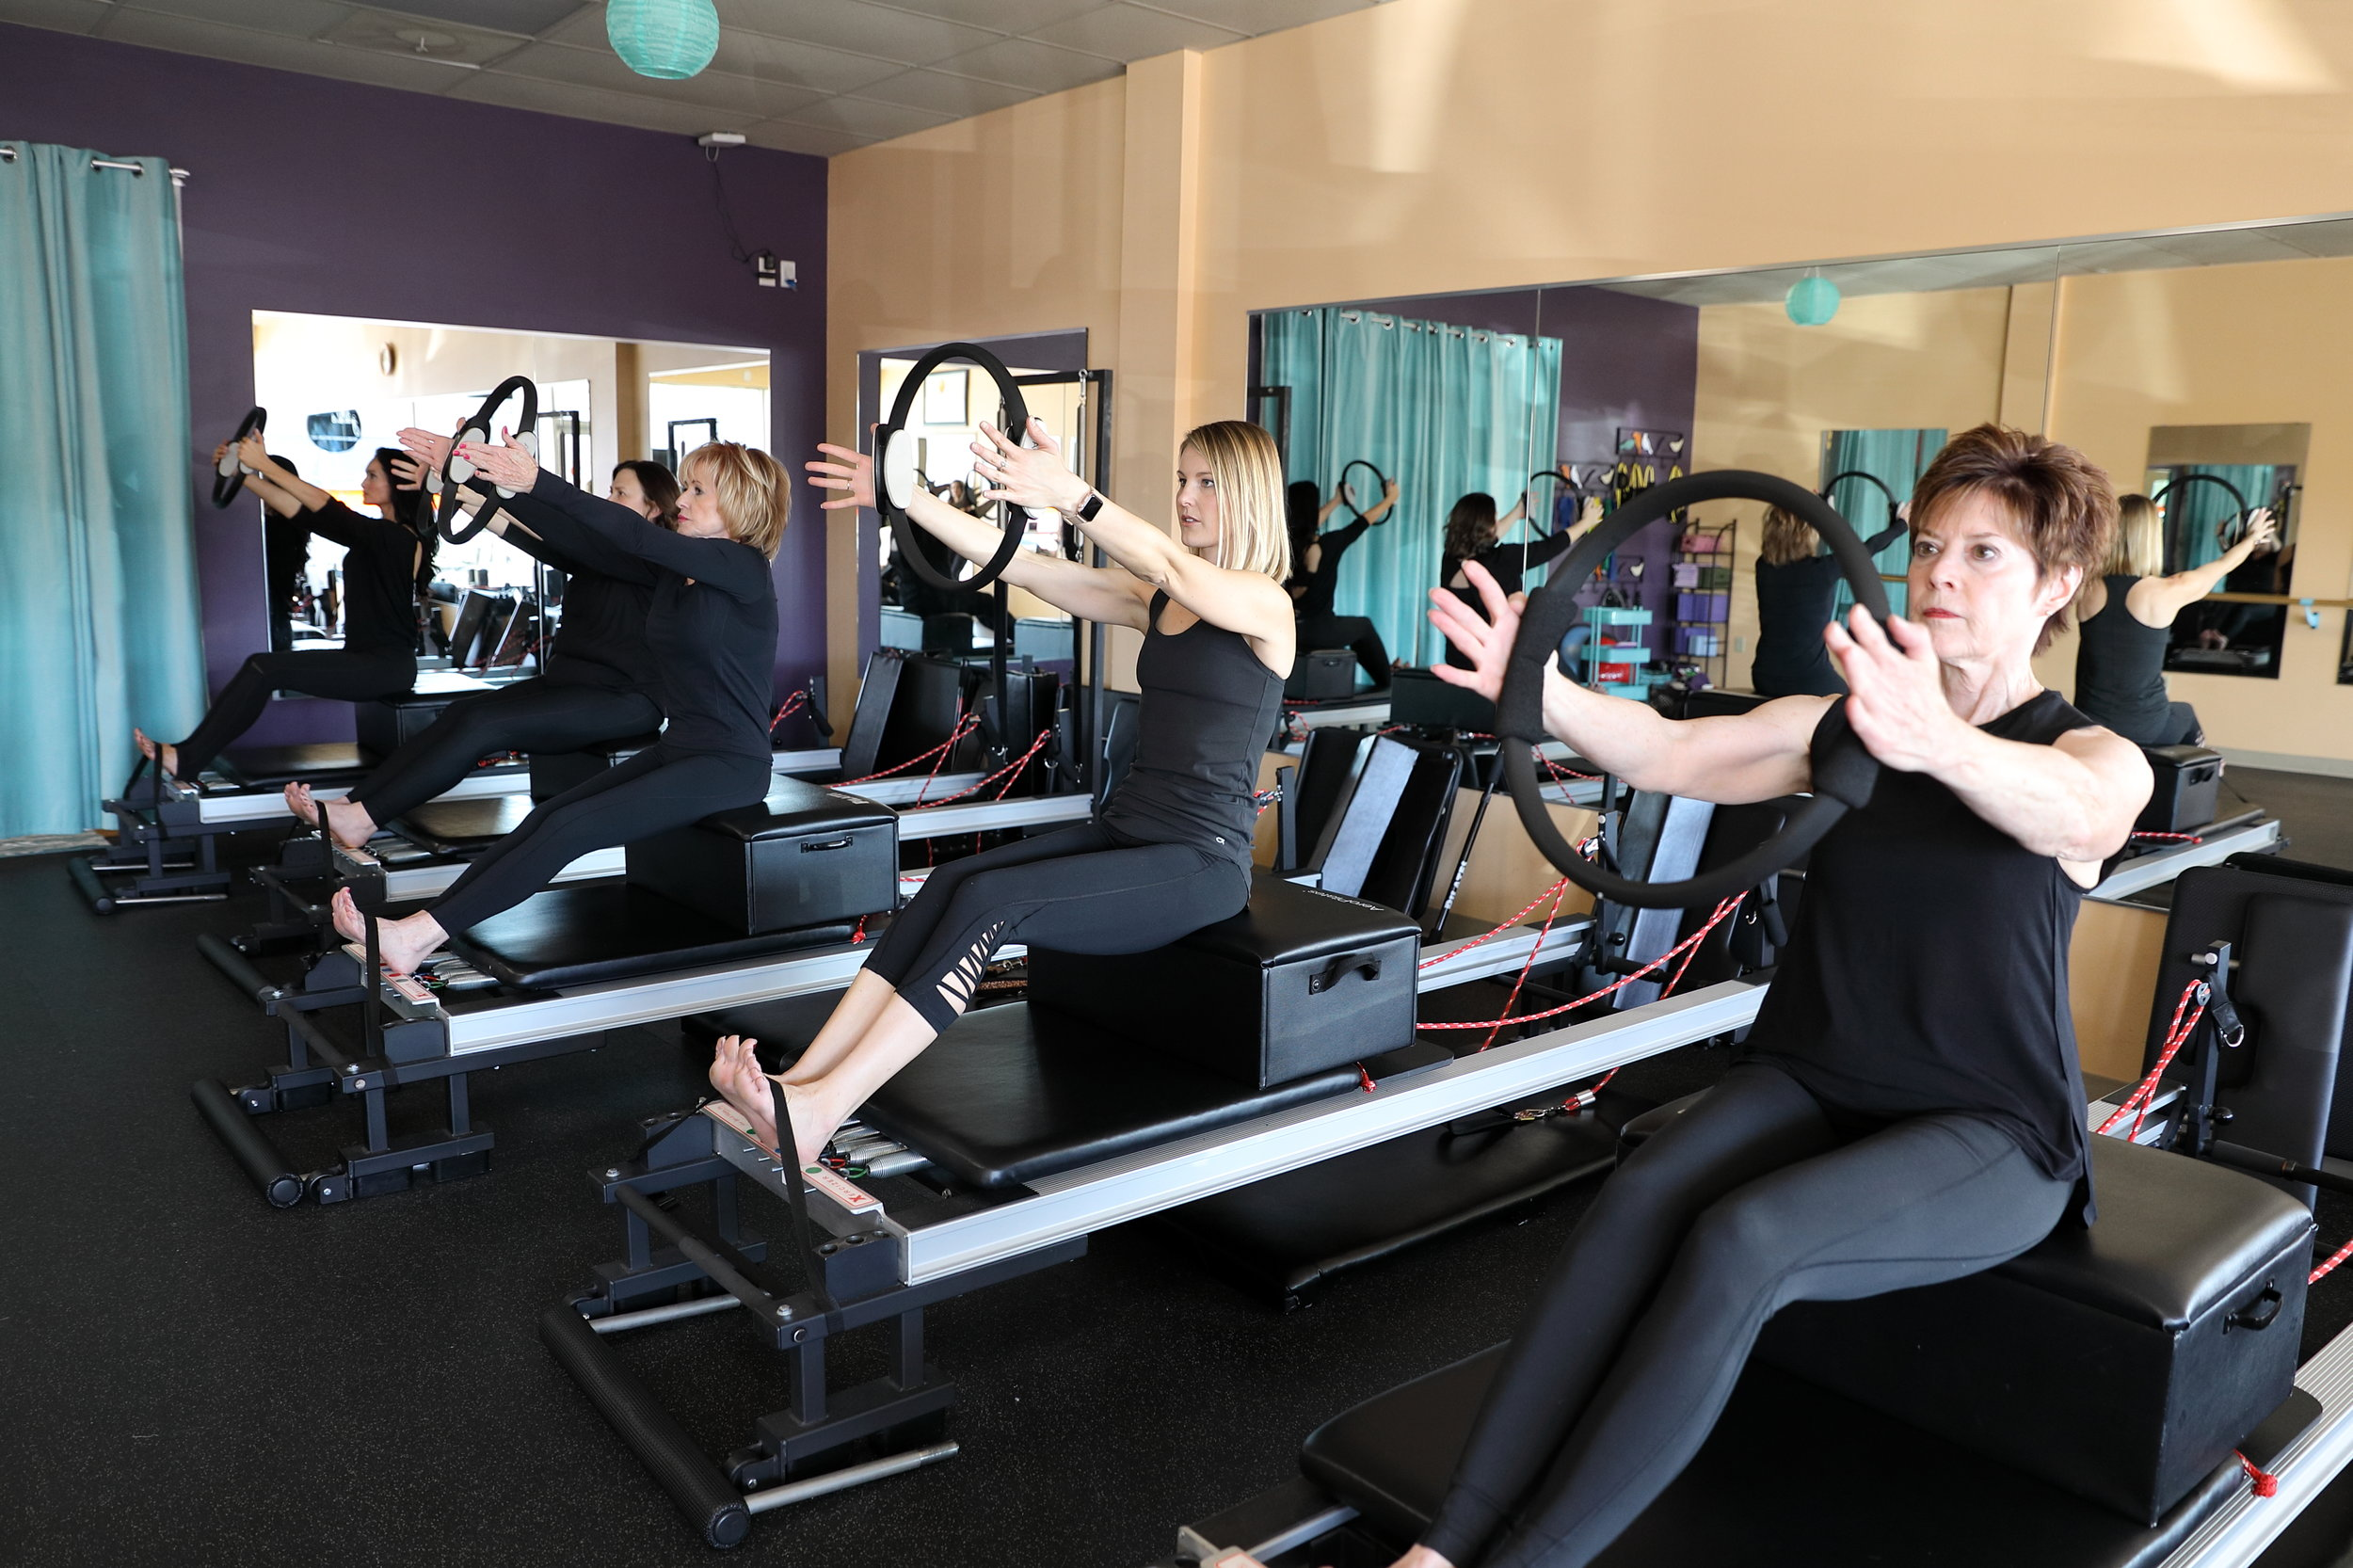 Group pilates classes north of river kc